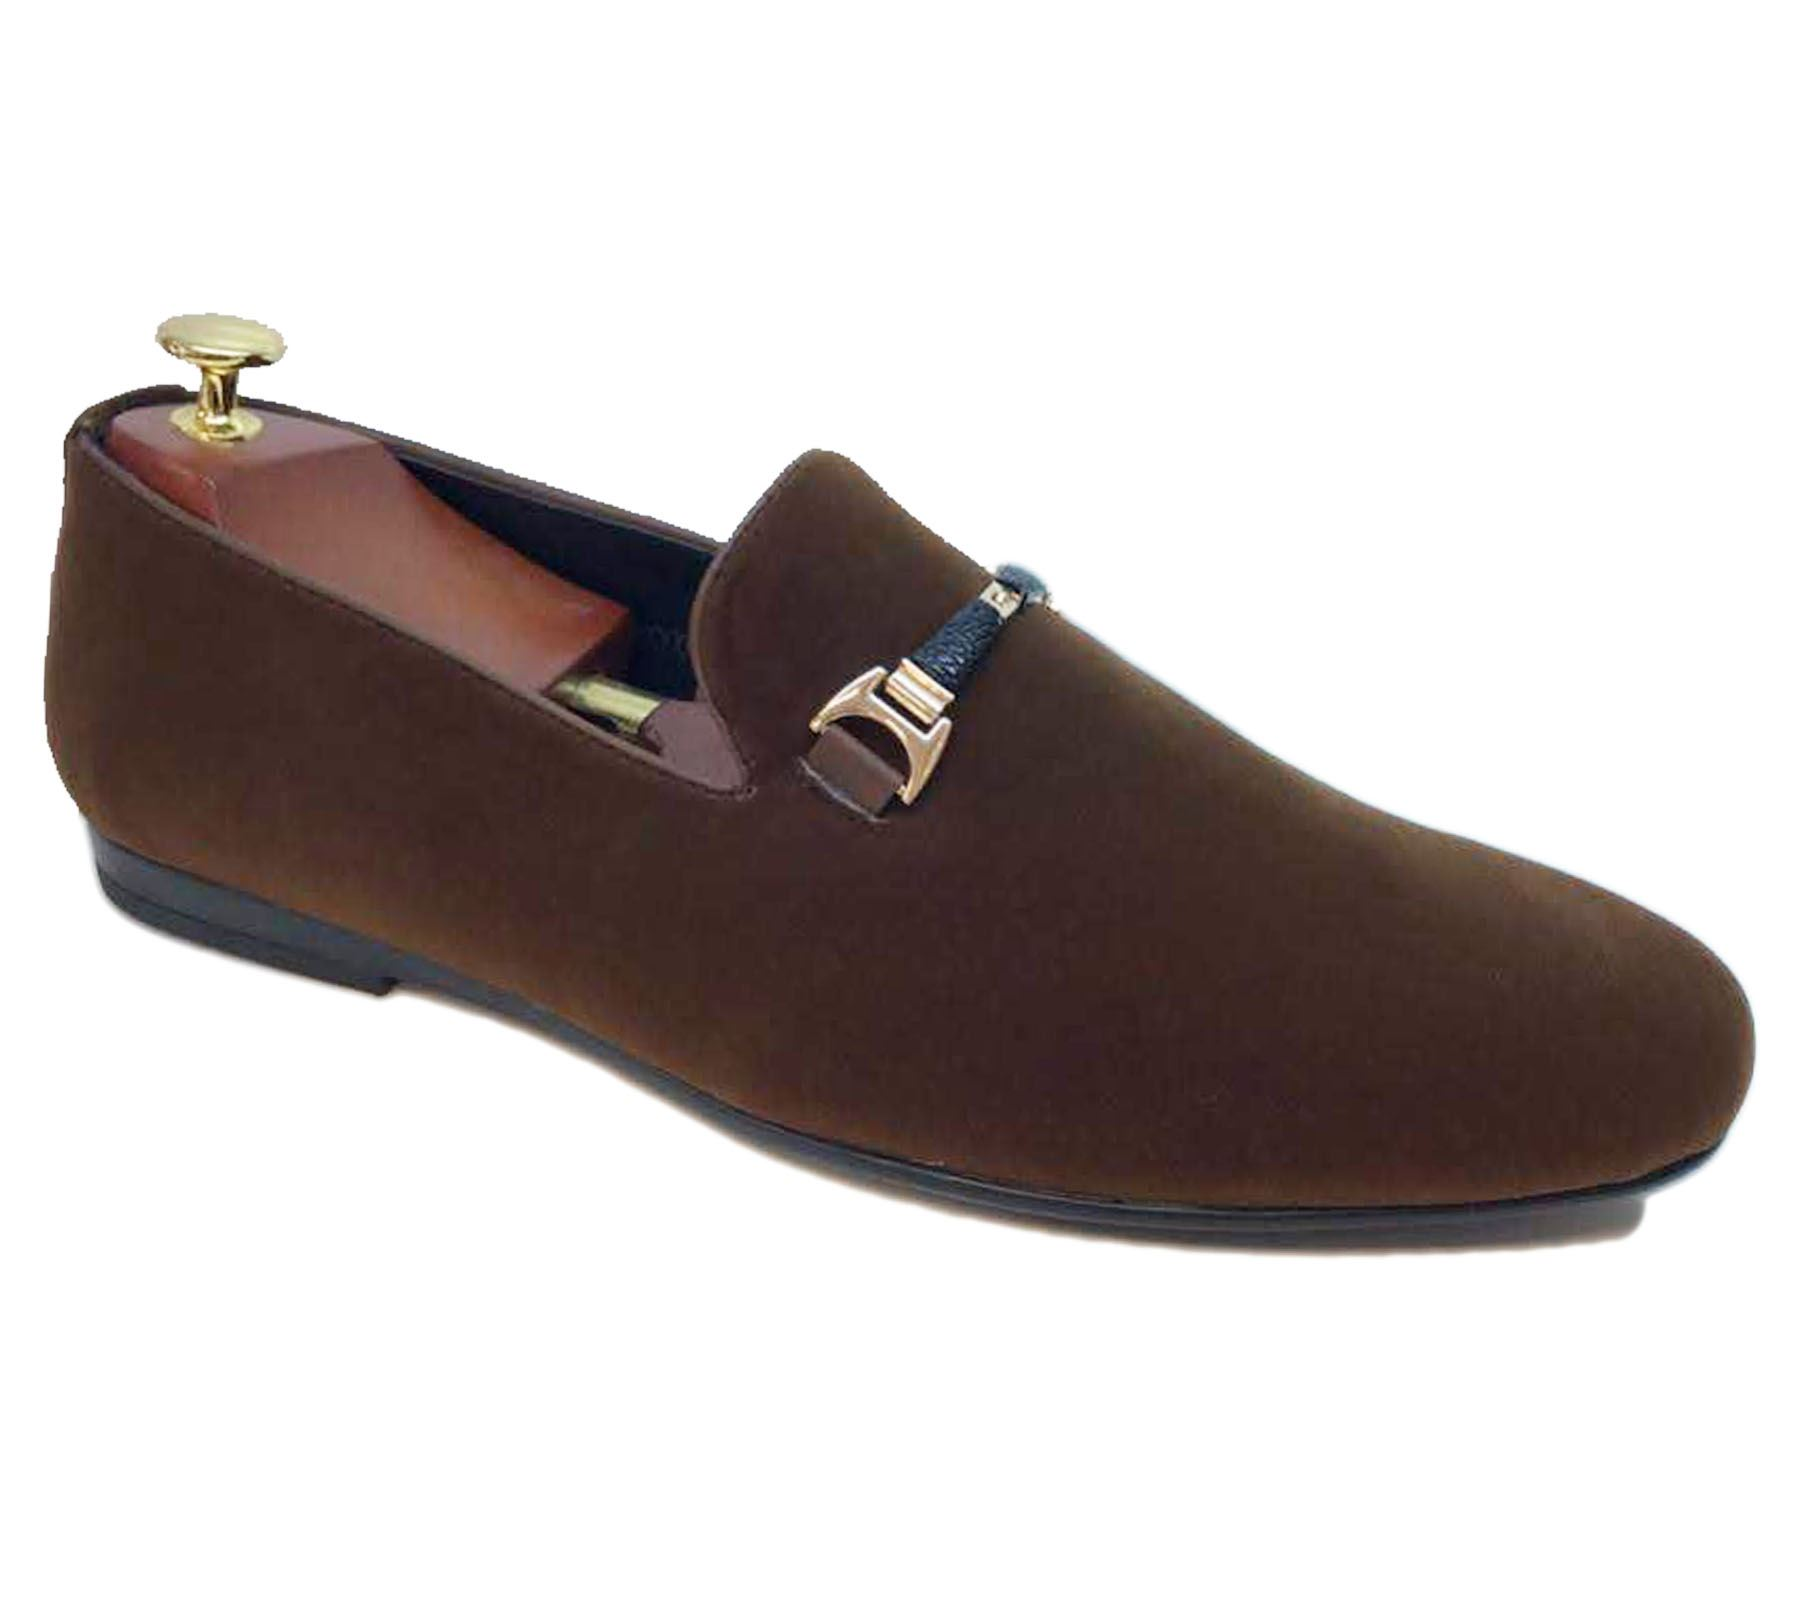 Mens-Loafers-Mocassin-Boat-Deck-Shoes-Flat-Slip-On-Driving-Casual-Smart-Pumps thumbnail 11